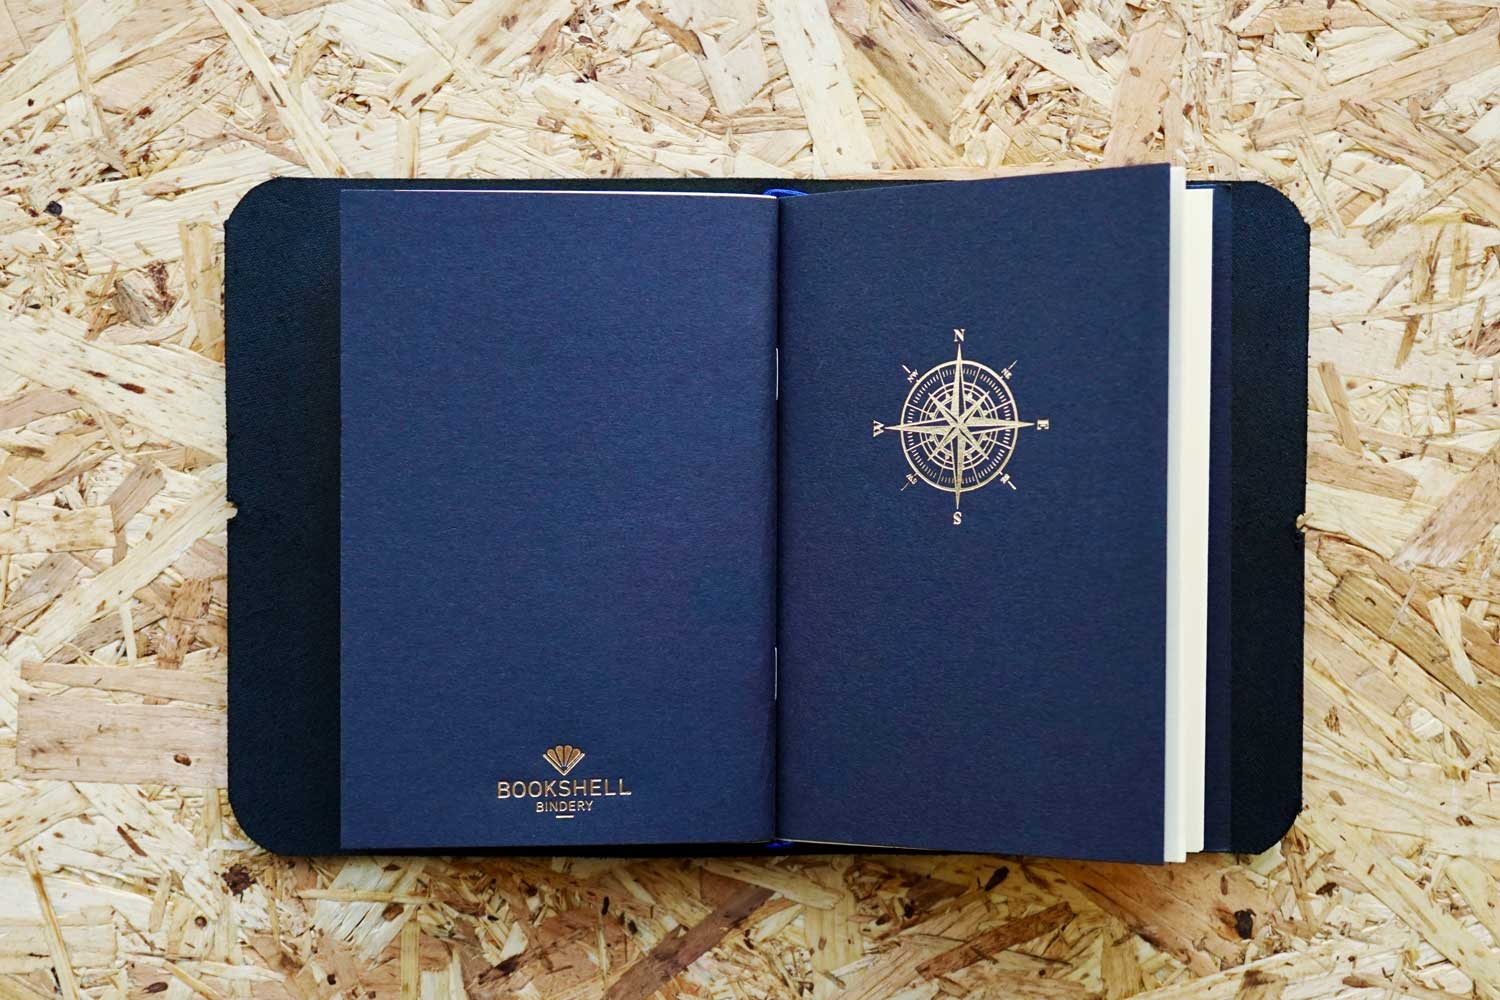 Never-ending journal - Seas the day, leather travel journal, with 3 A6 pocket size inner notebooks, this photo shows the compass illustration embossed in gold foil onto the cover